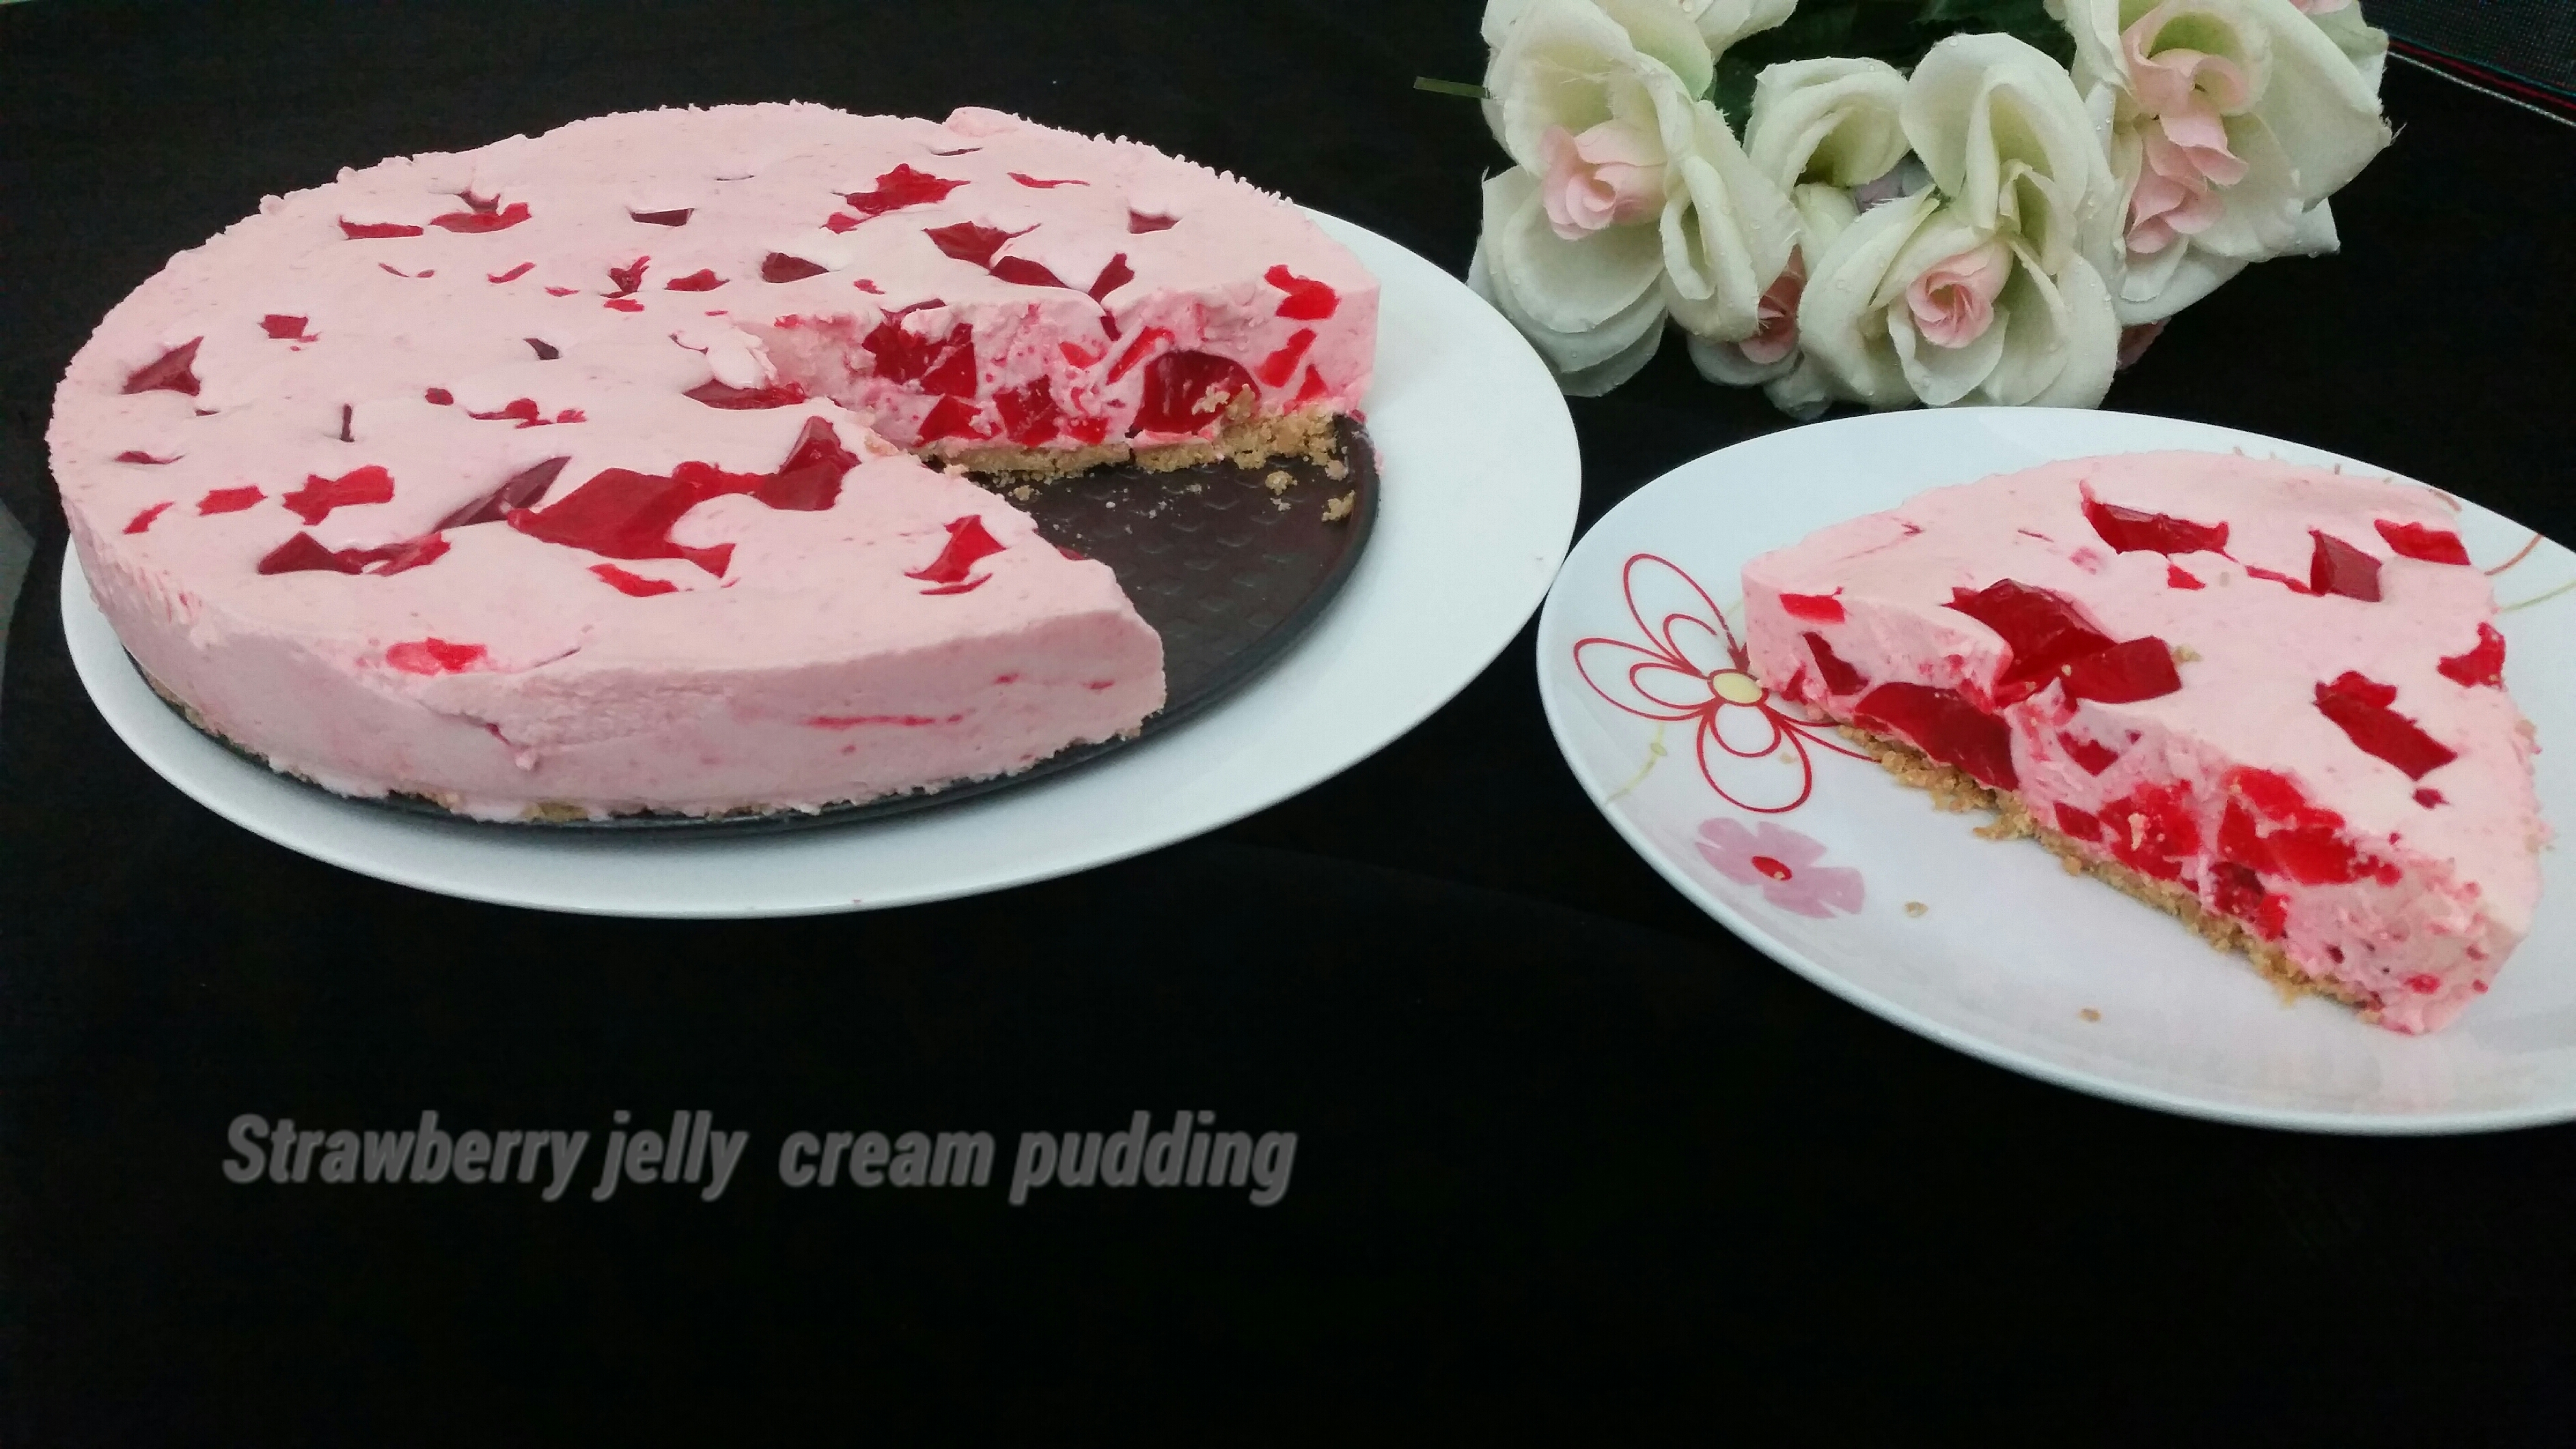 Strawberry jelly cream pudding